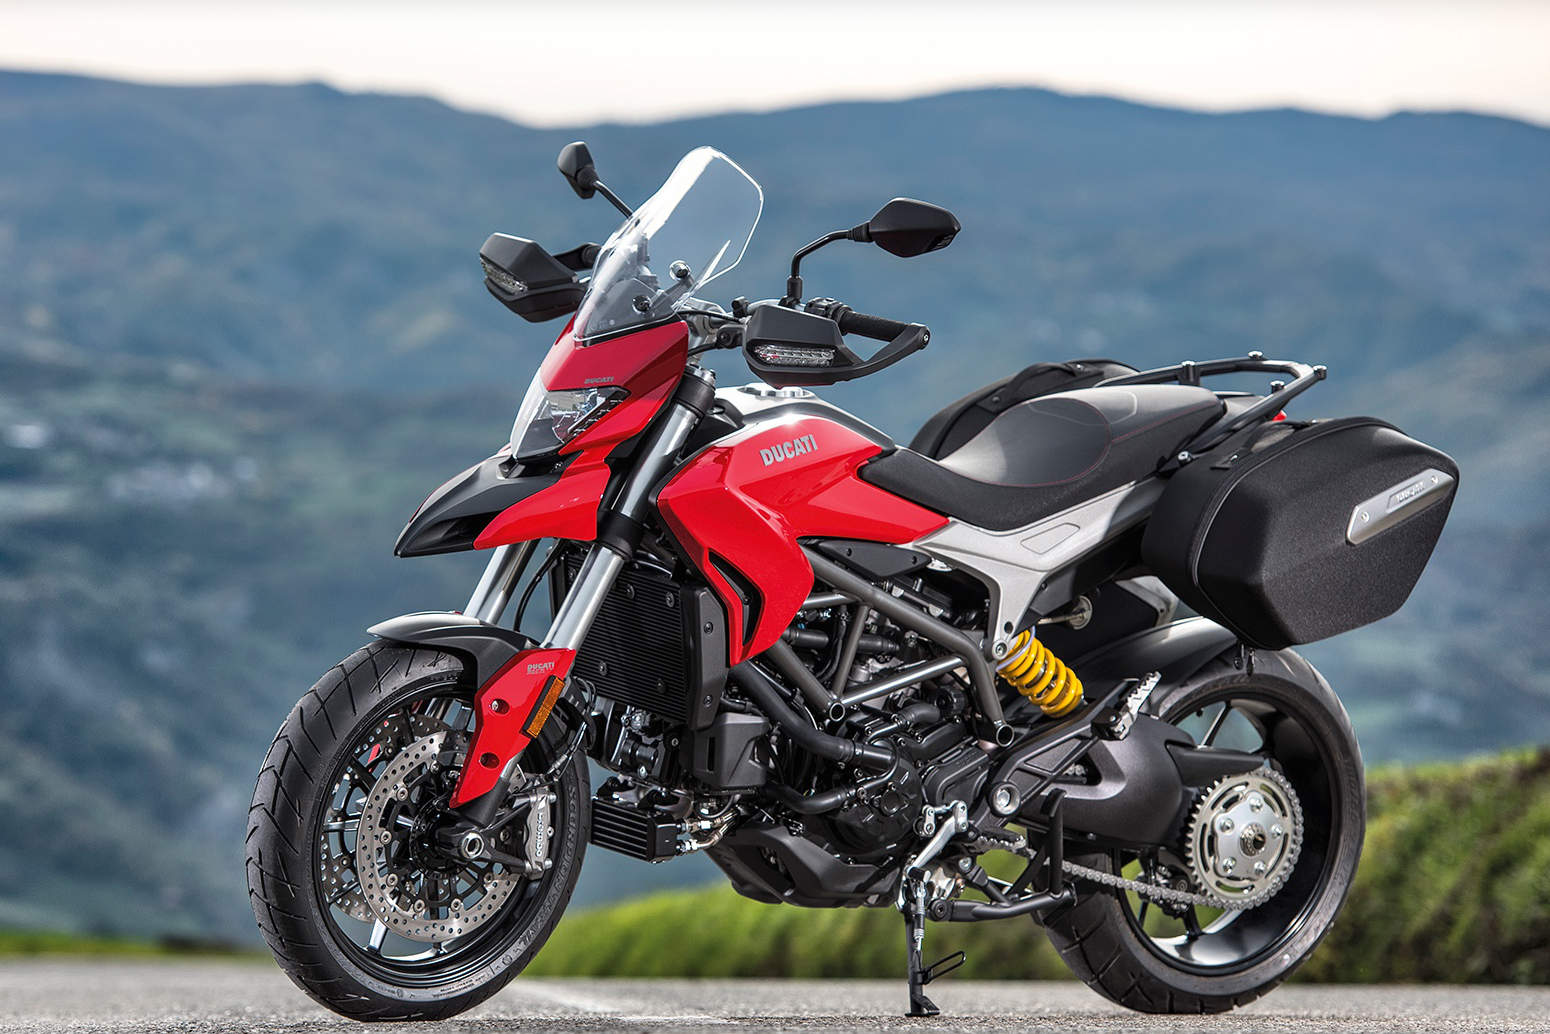 Ducati Hypermotard Family Gets Larger More Powerful